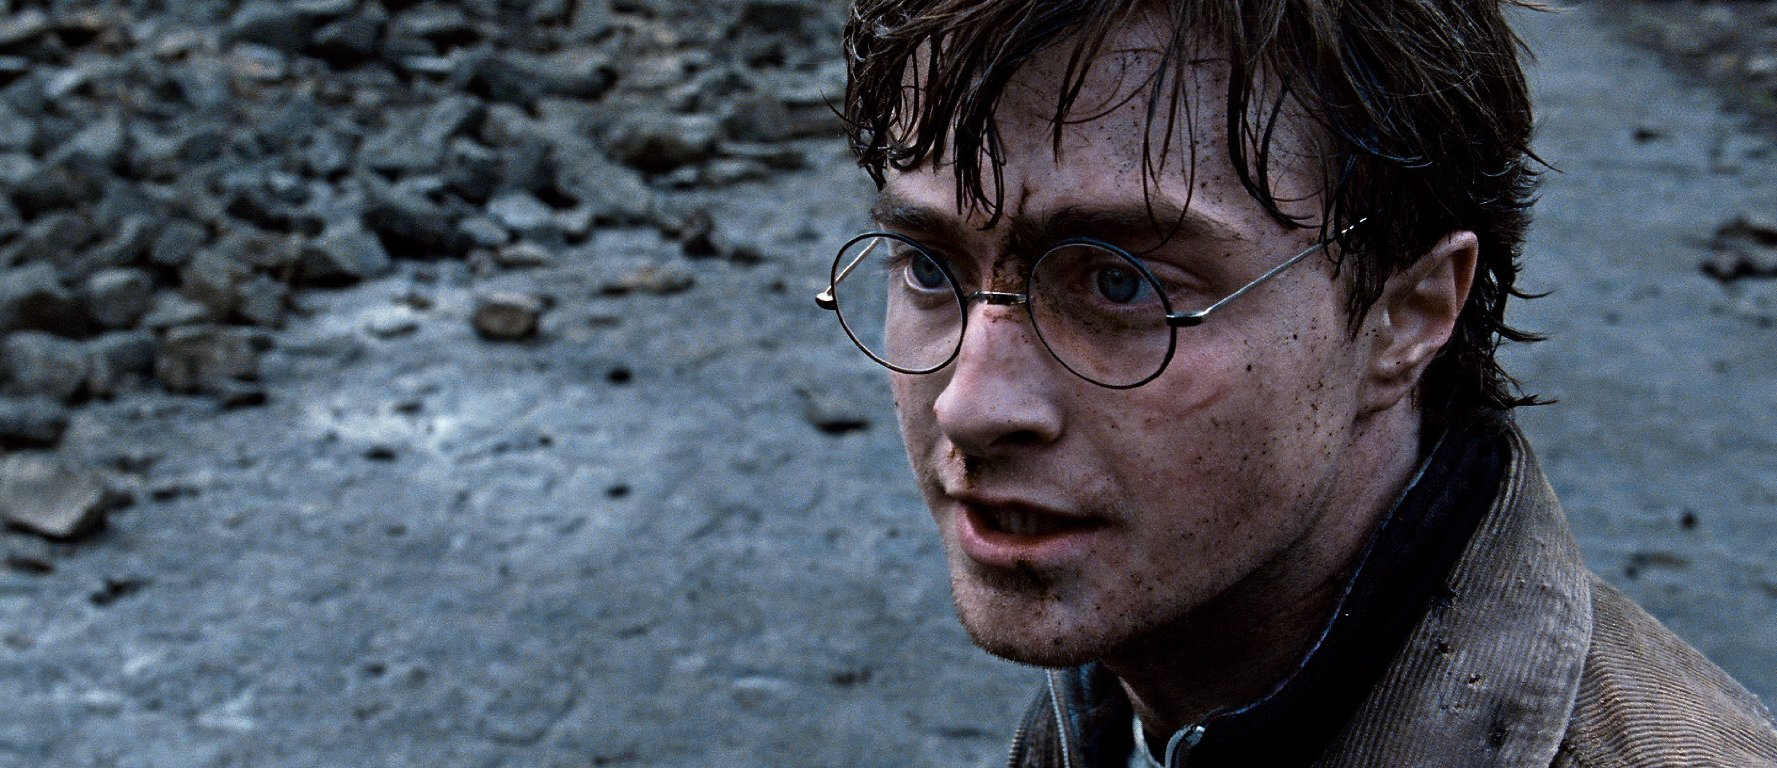 Daniel Radcliffe in Harry Potter and the Deathly Hallows - Part 2 (2011)